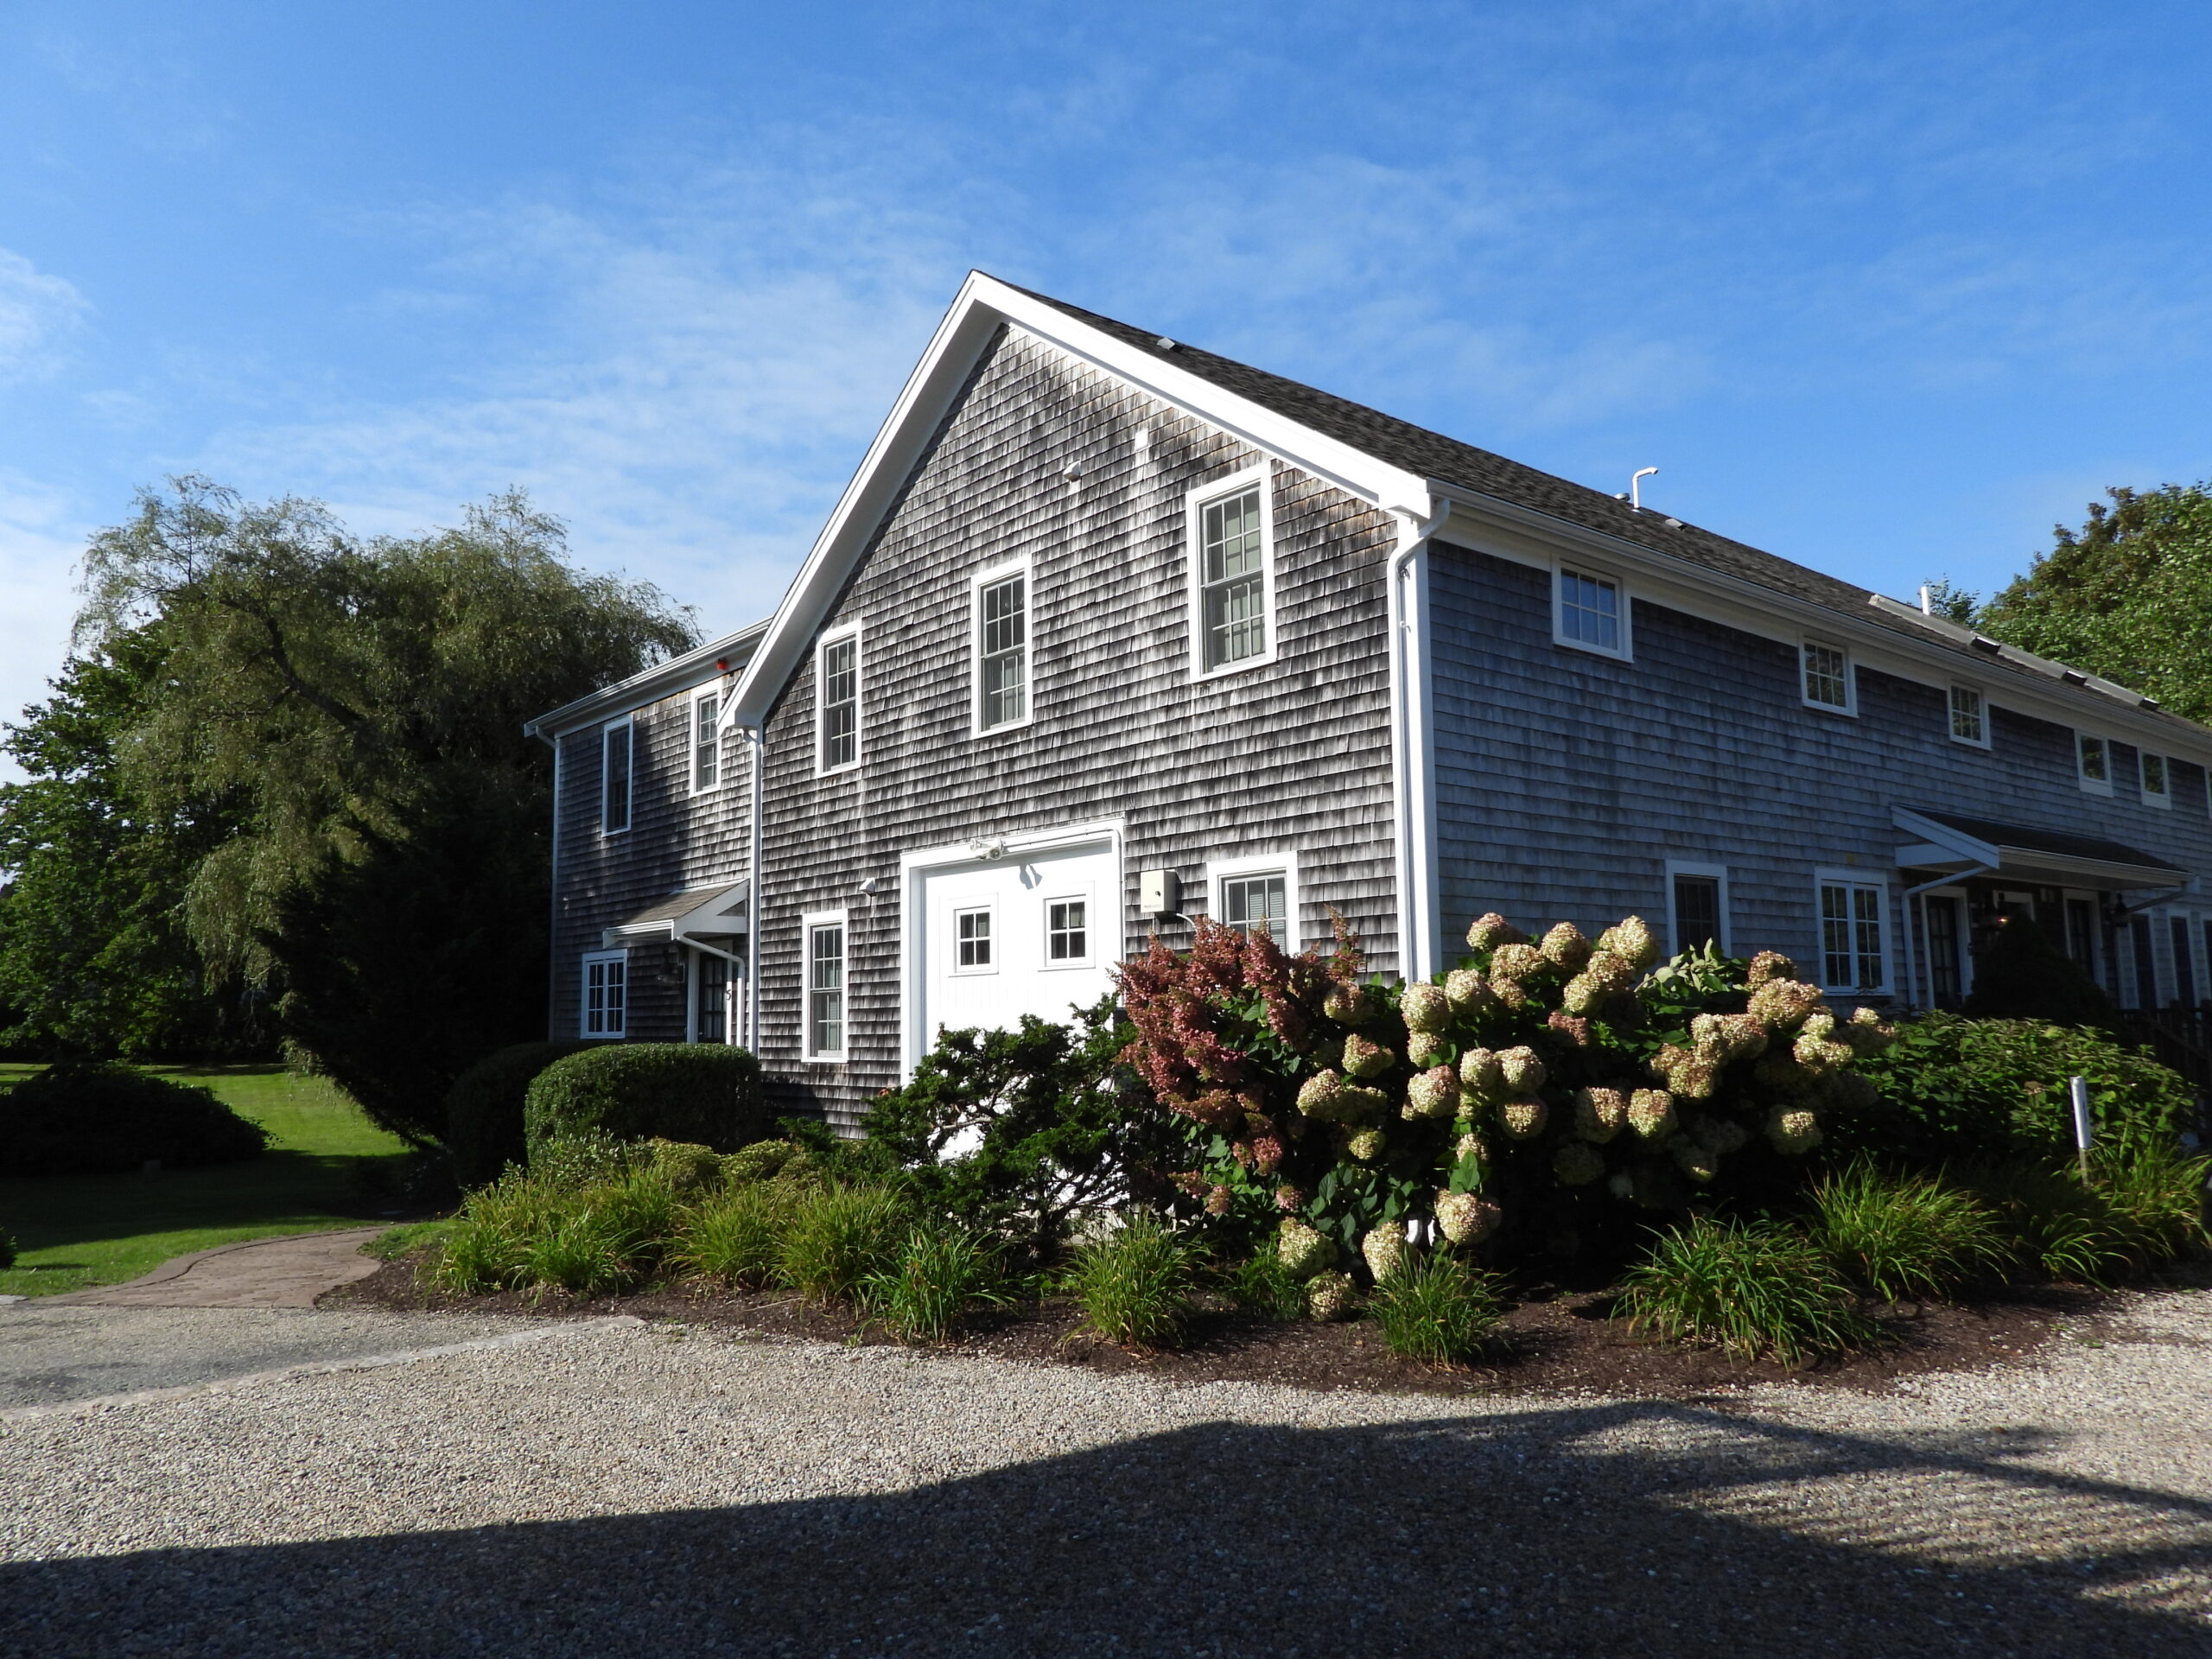 Sold- West Falmouth Contemporary Condo in an Historic Barn.